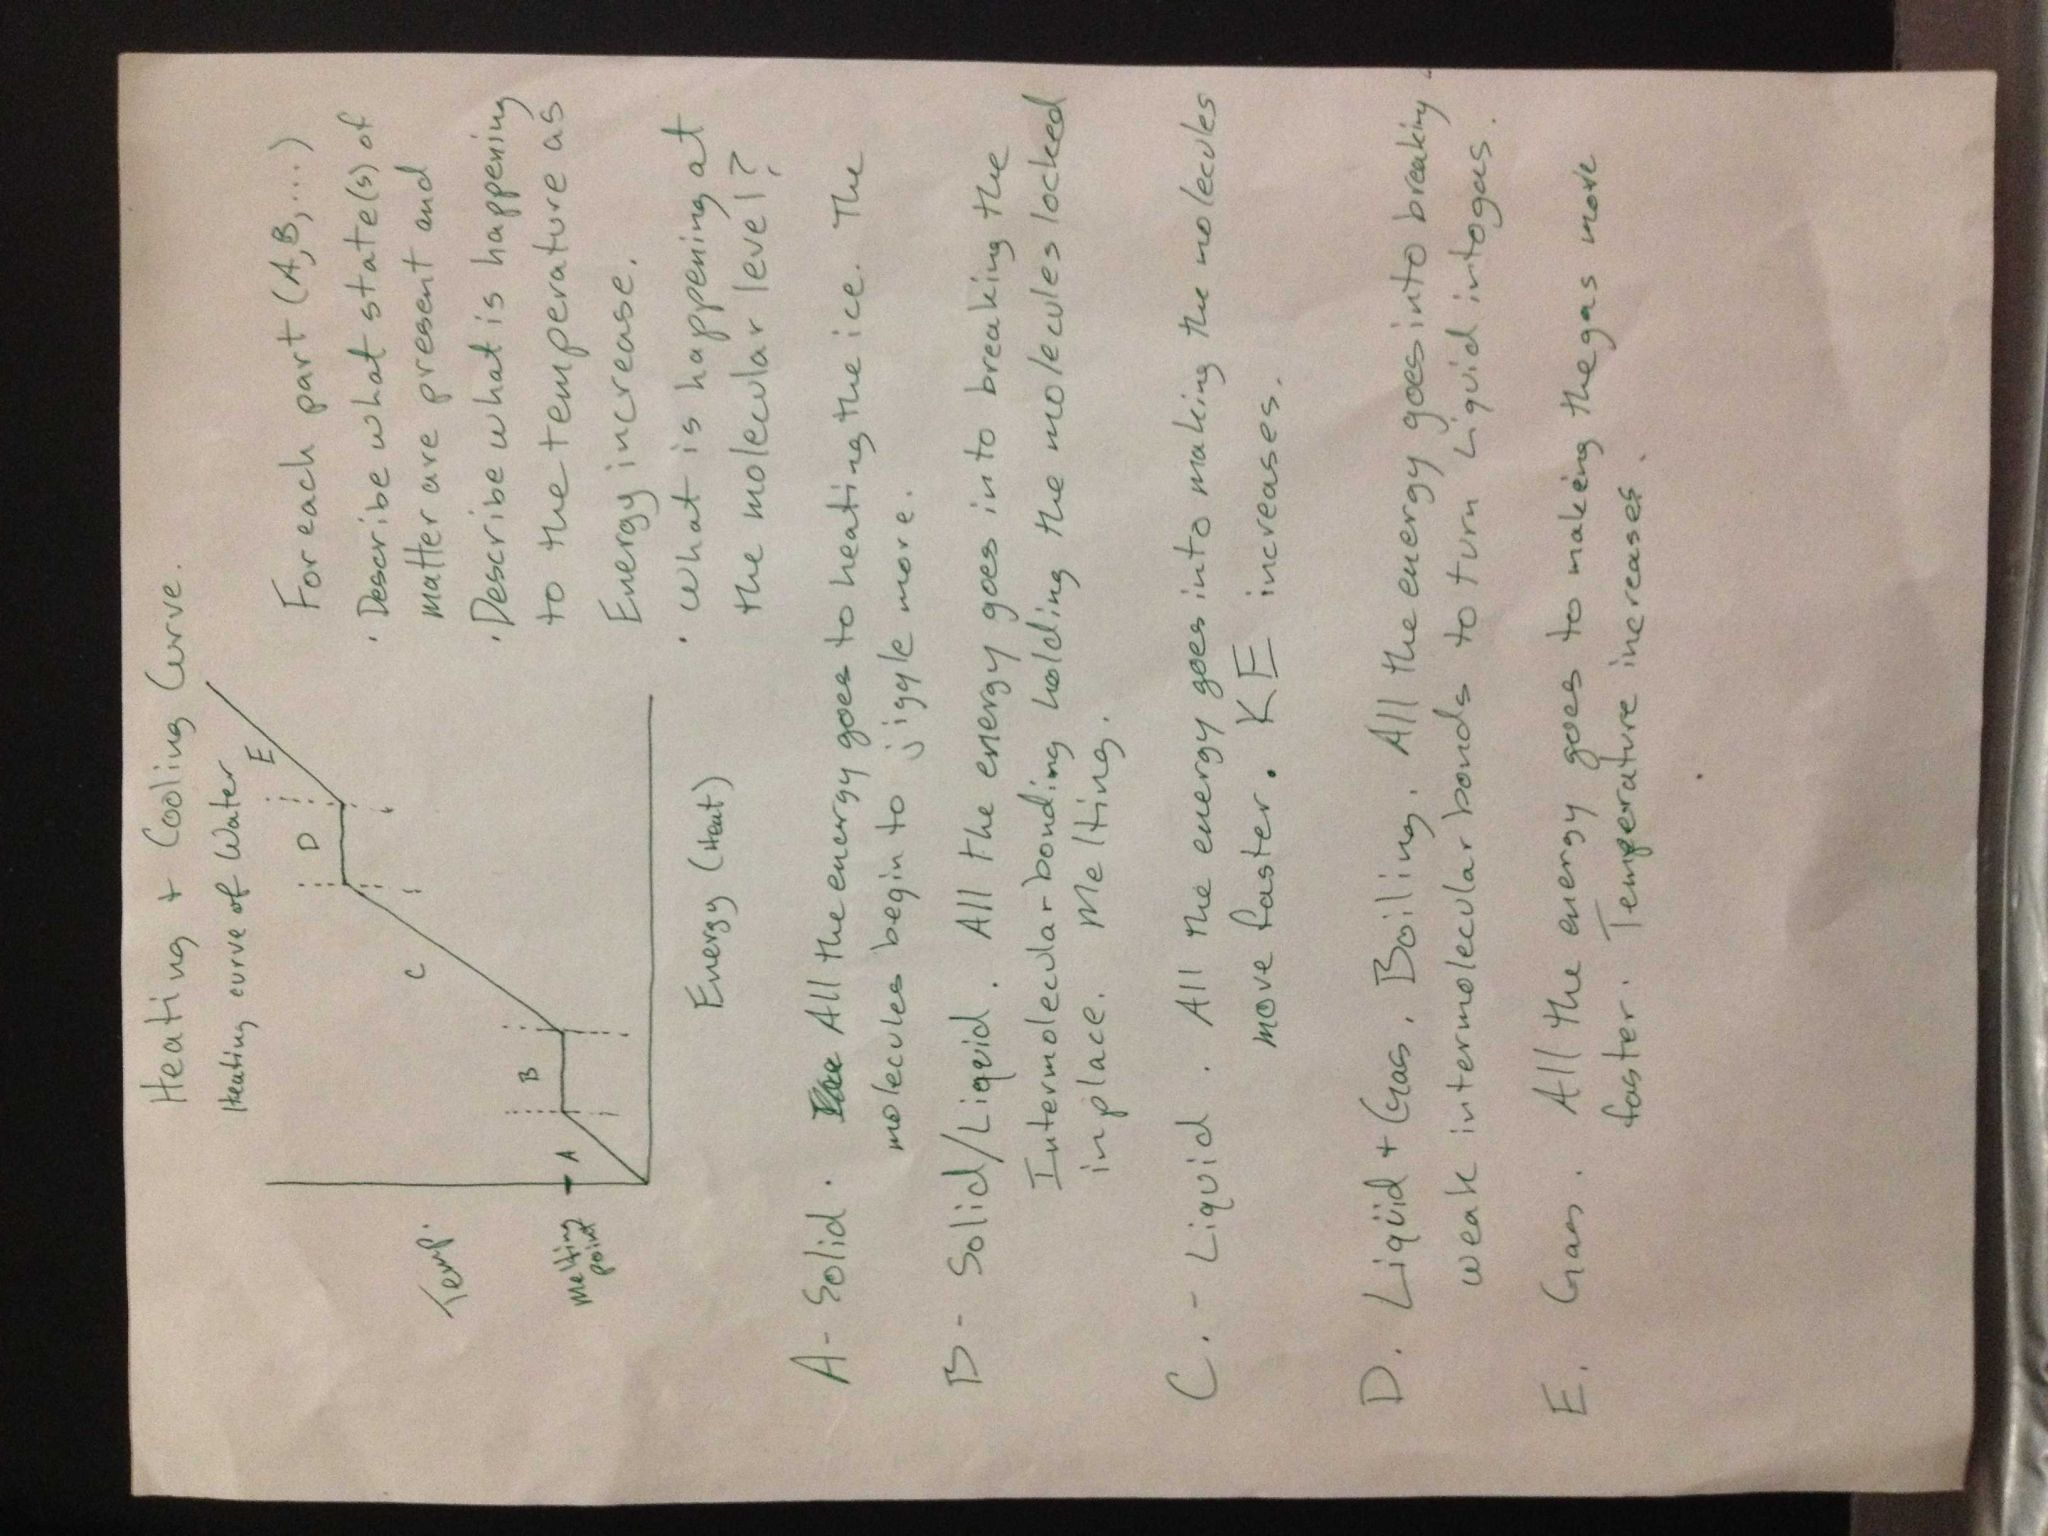 Energy Note Taking Worksheet Answers as Well as Phase Change Notes Jpg